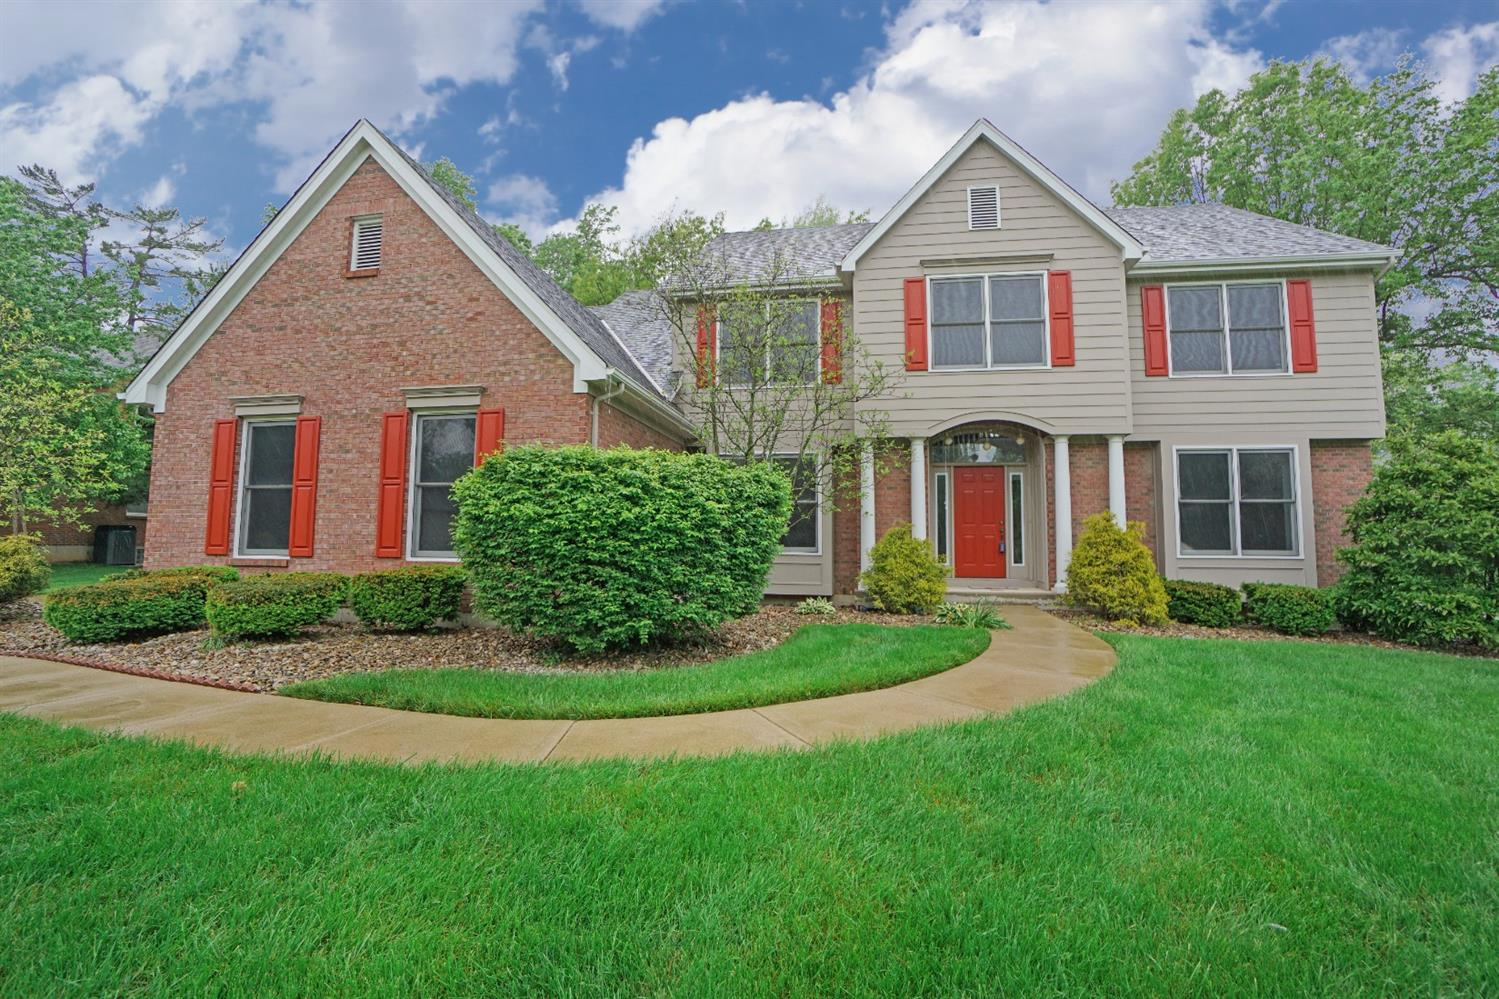 11441 Brittany Woods Ln Sycamore Twp., OH